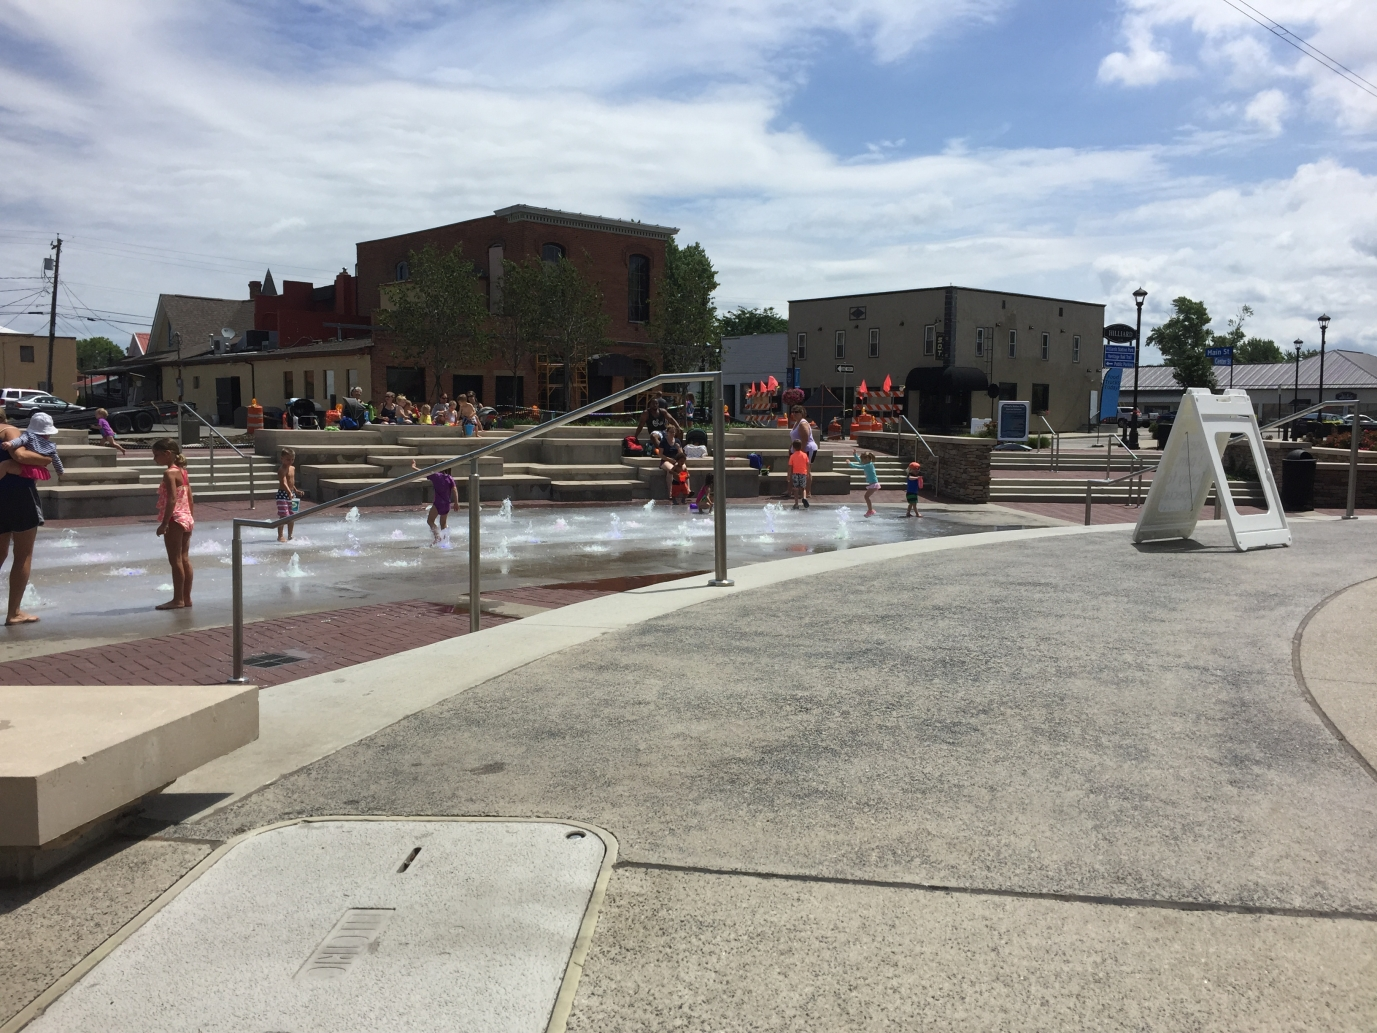 Splash pad at Hilliard's Station Park